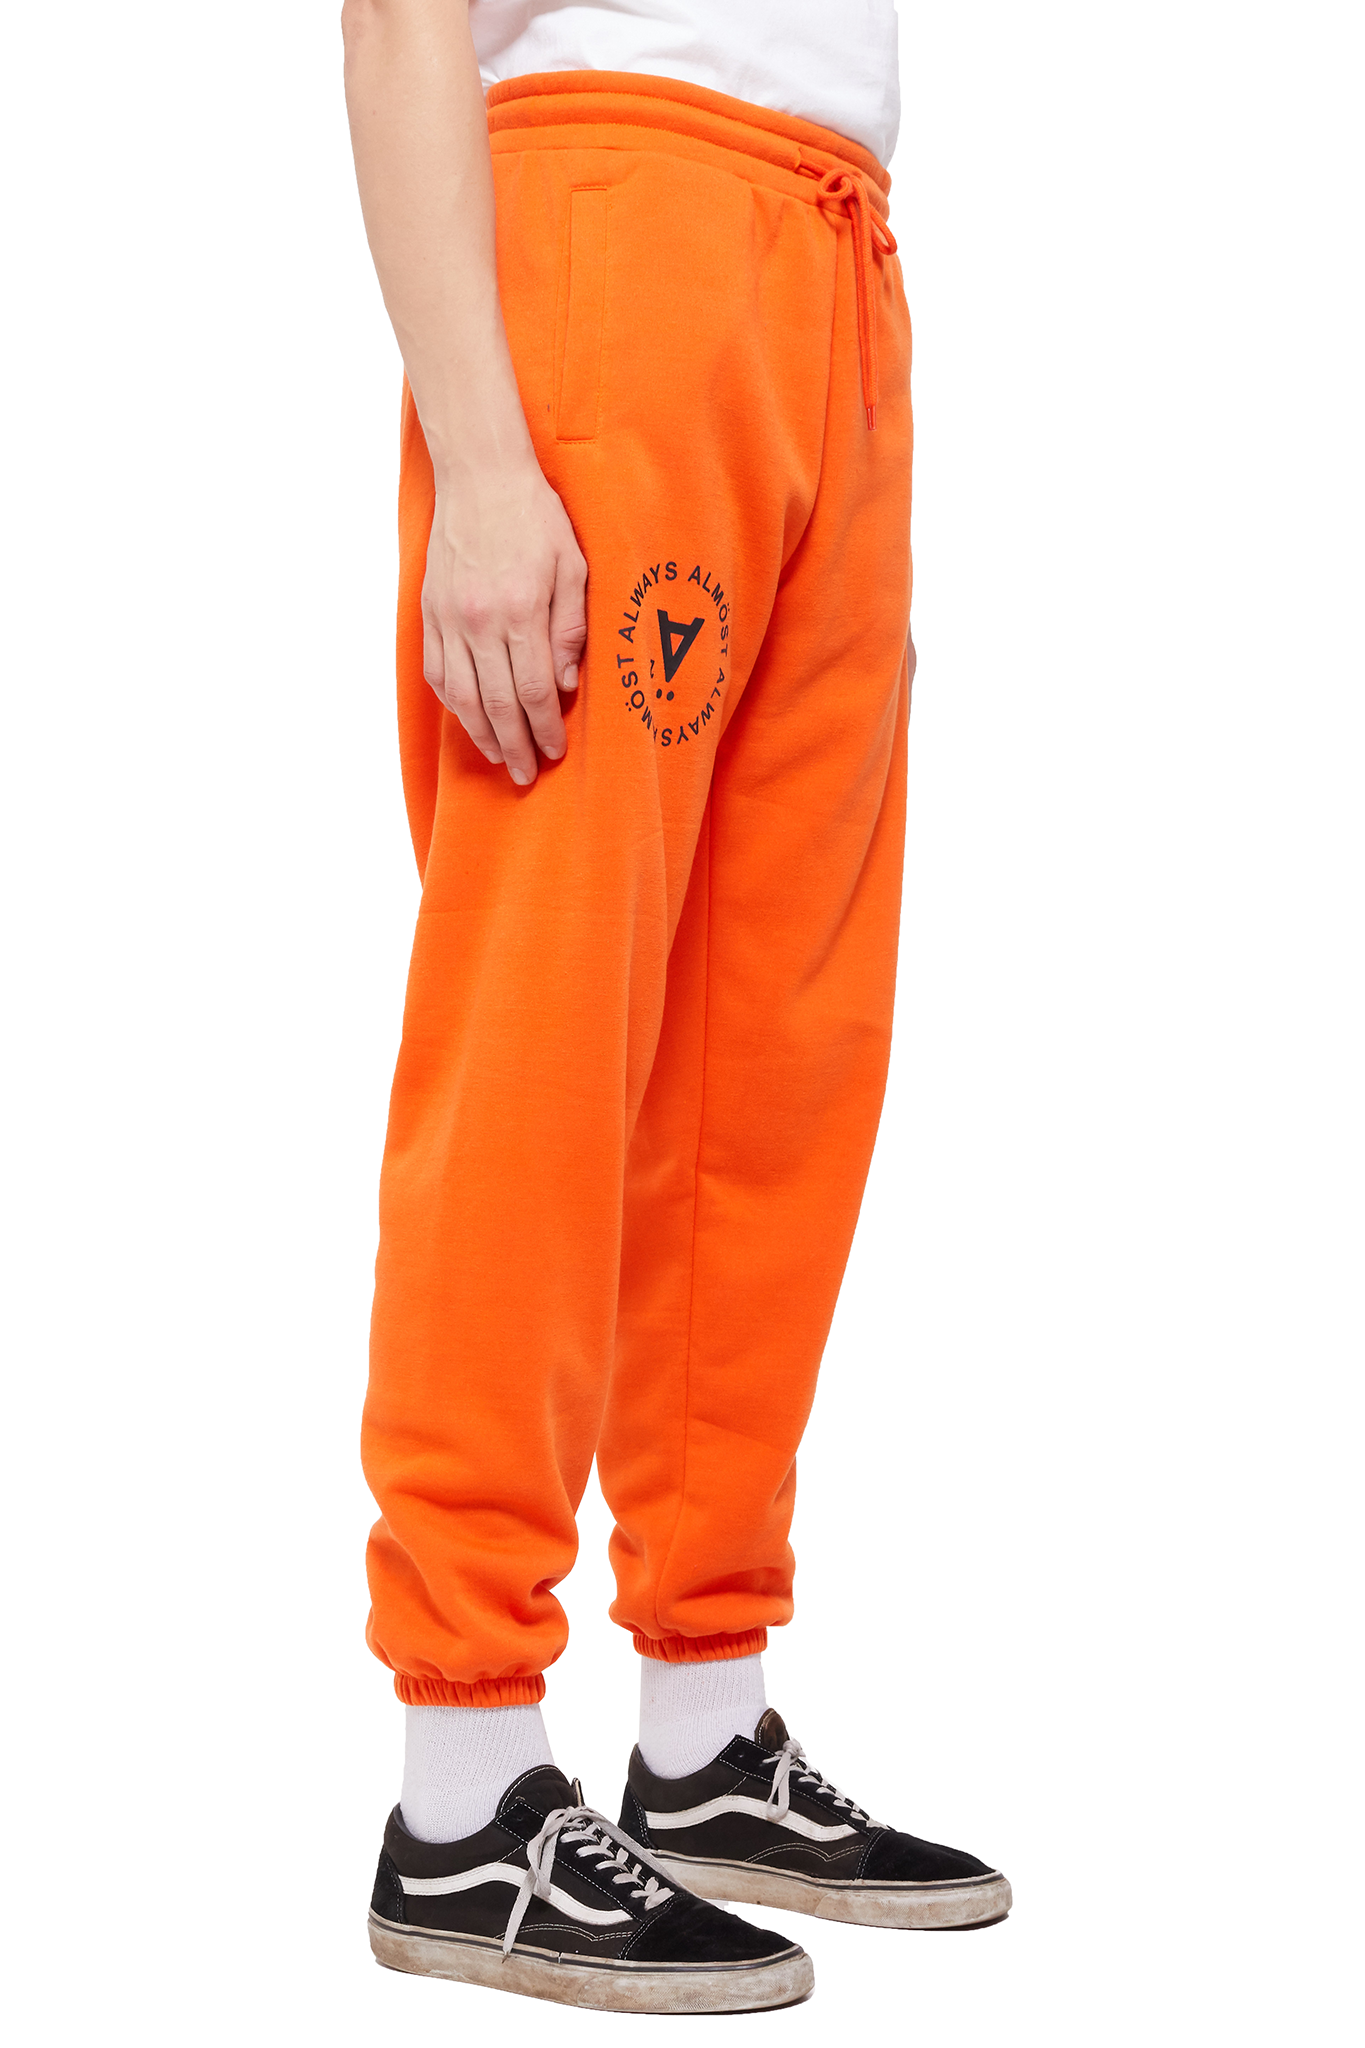 Copy of Raceway Sweatpants - Orange